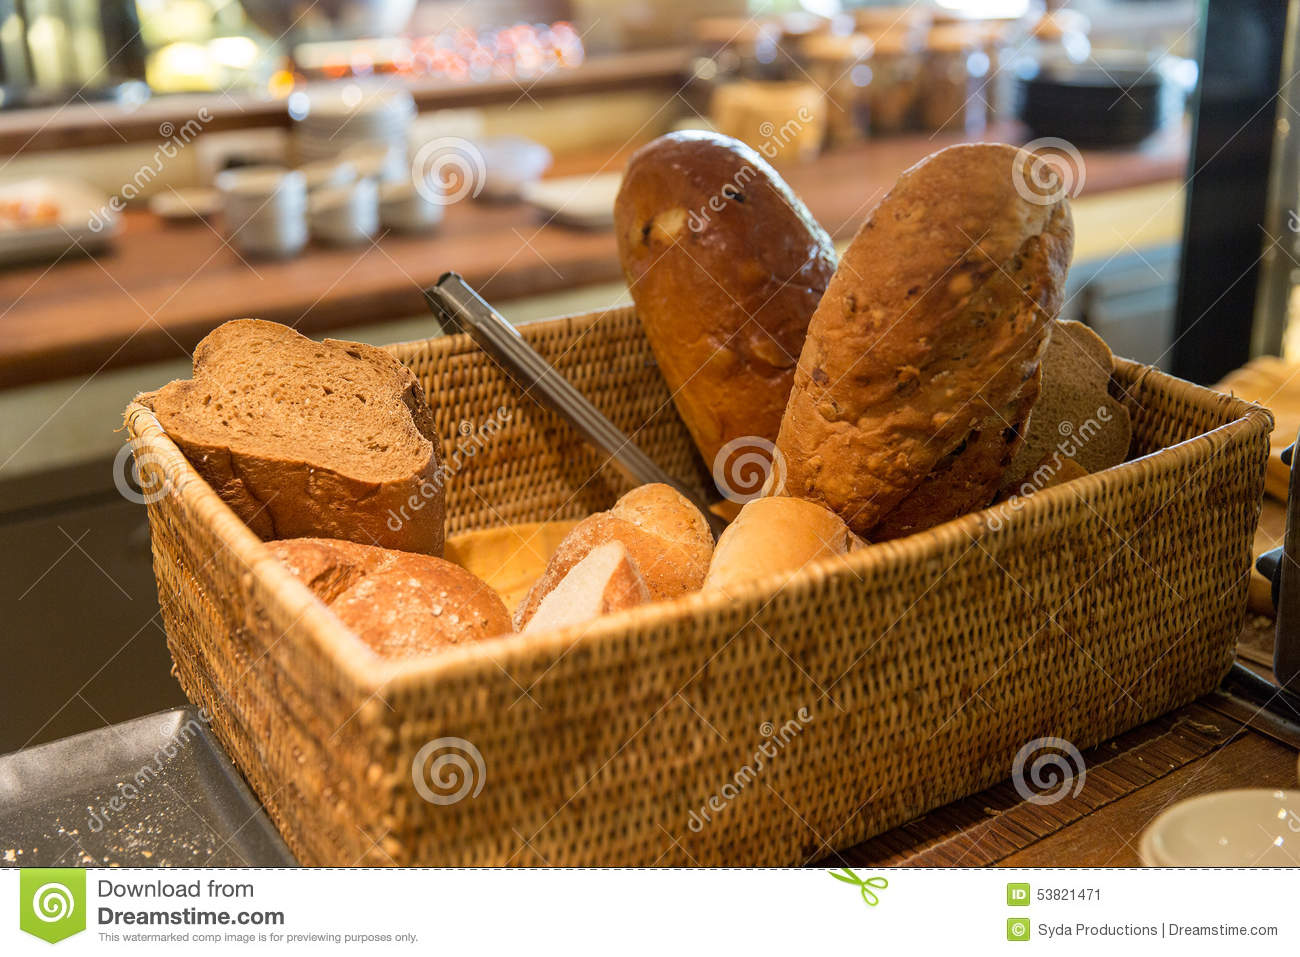 panier avec du pain au restaurant image stock image du farine carbohydrate 53821471. Black Bedroom Furniture Sets. Home Design Ideas